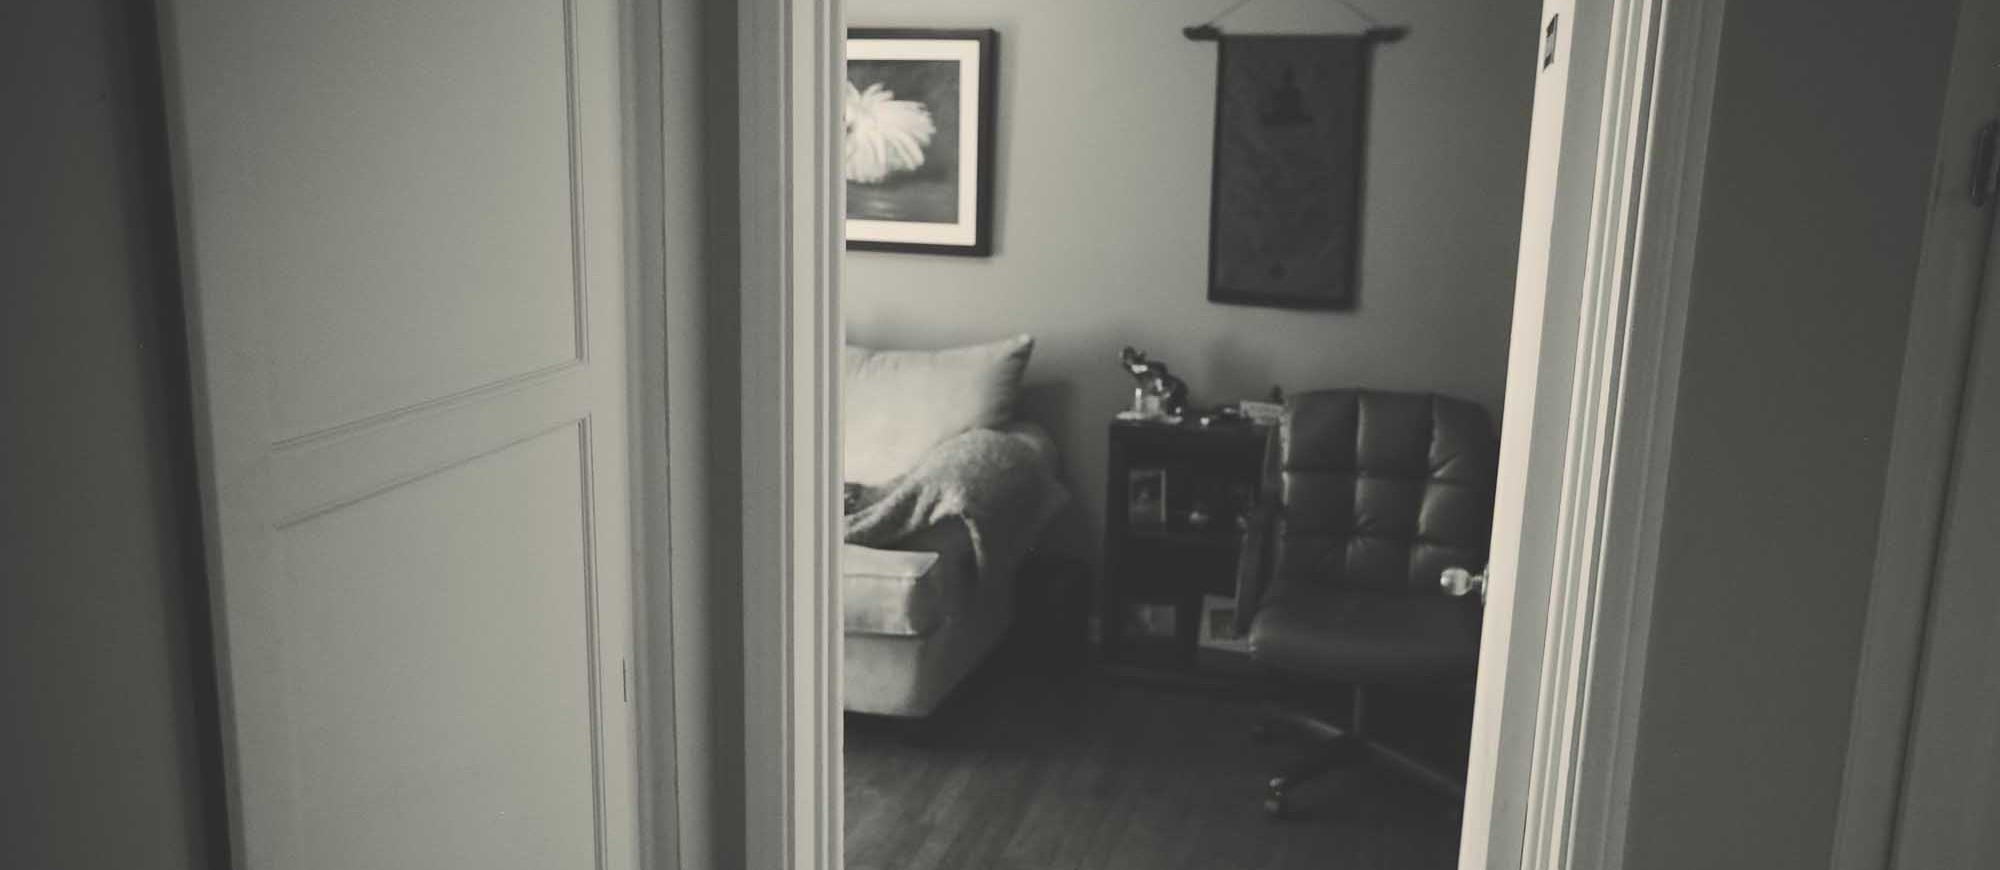 Center For Counseling & Psychotherapy in Omaha, NE Patient Room